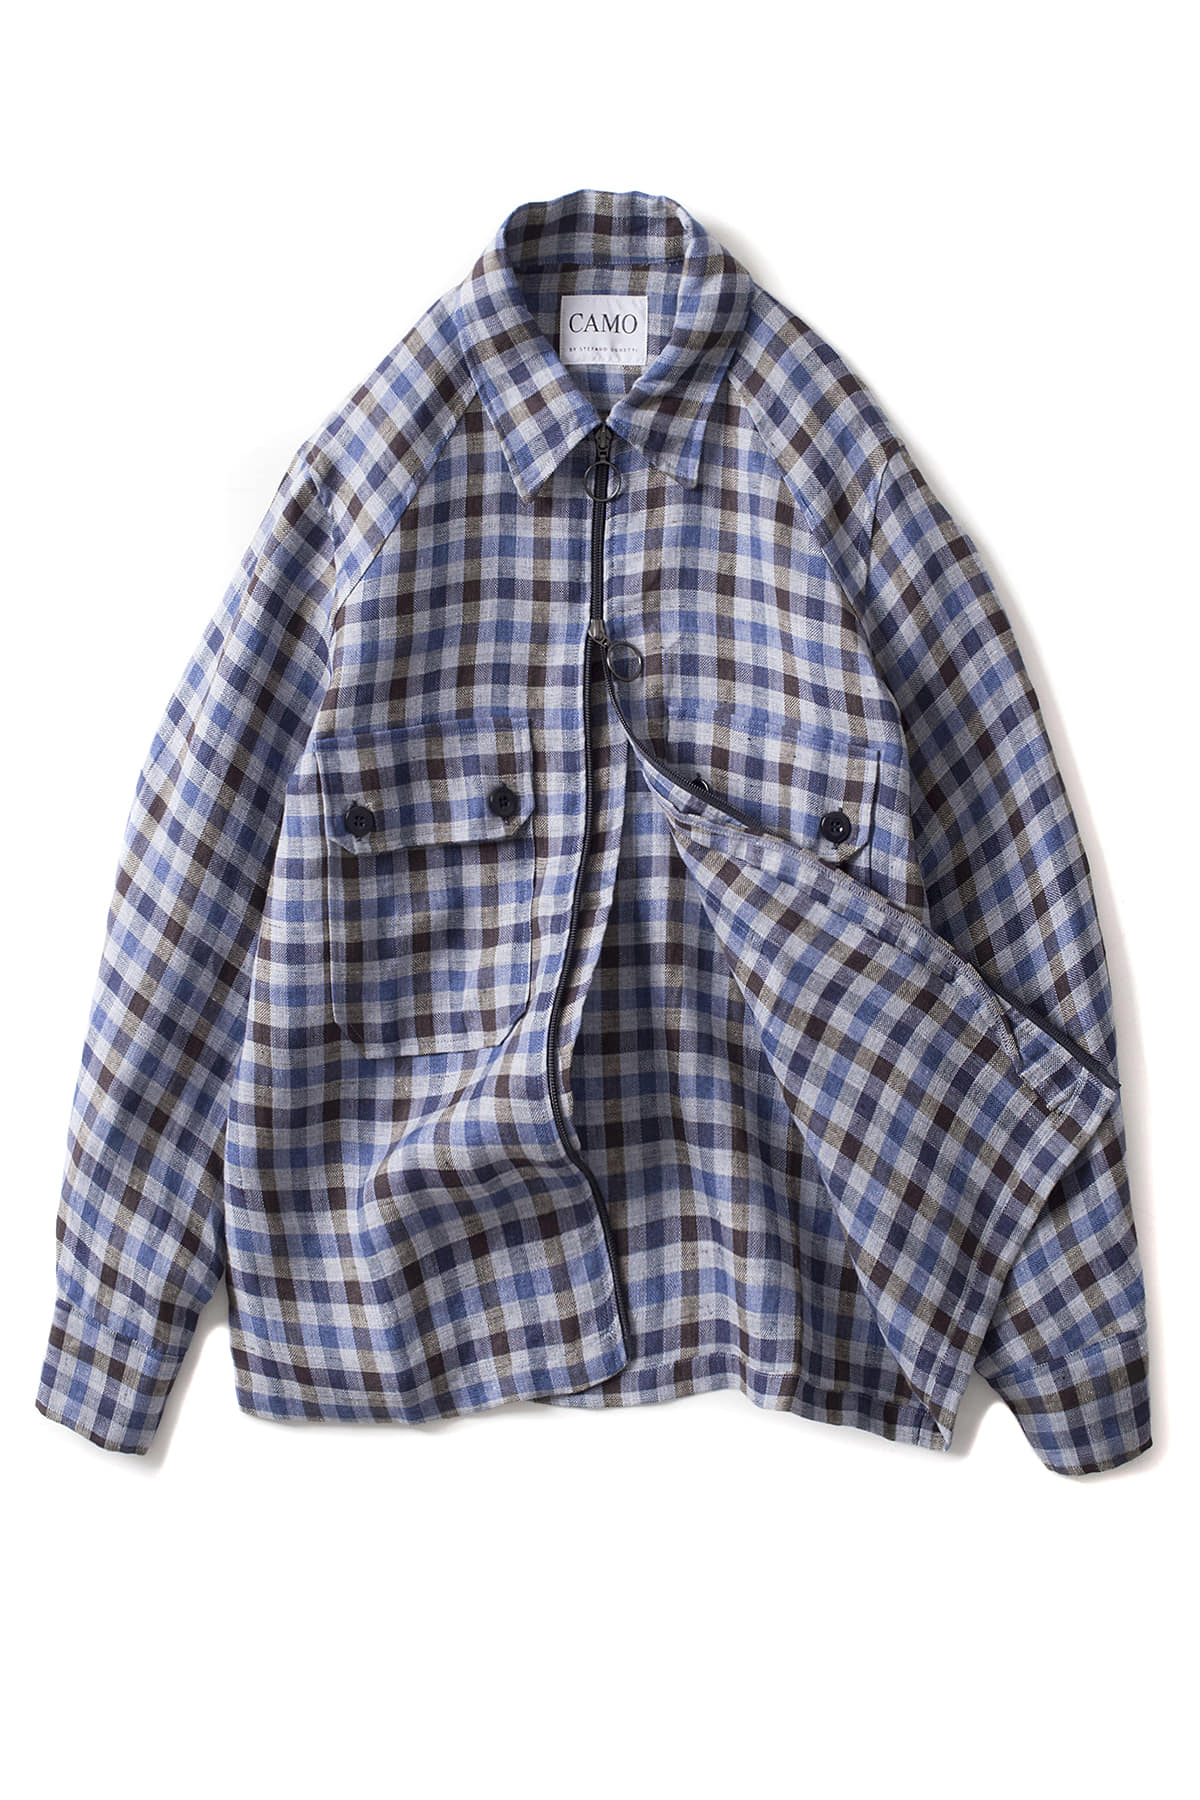 CAMO : Original - JKT Shirt (Linen Check Navy/Avio)